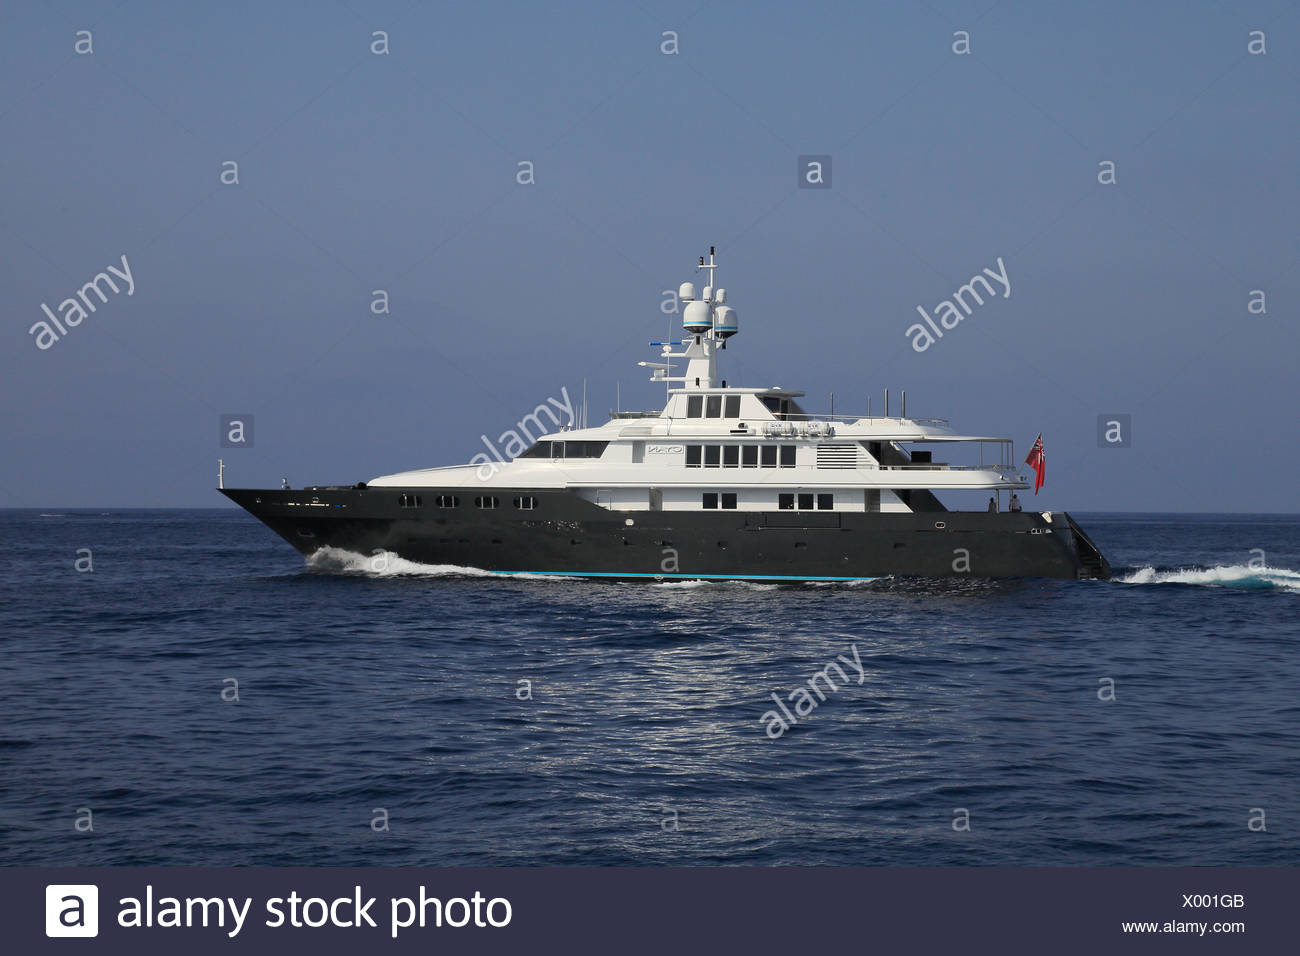 Cyan motor yacht, built by Codecasa, length: 48.70 m, built in 1997, French Riviera, France, Mediterranean Sea, Europe - Stock Image